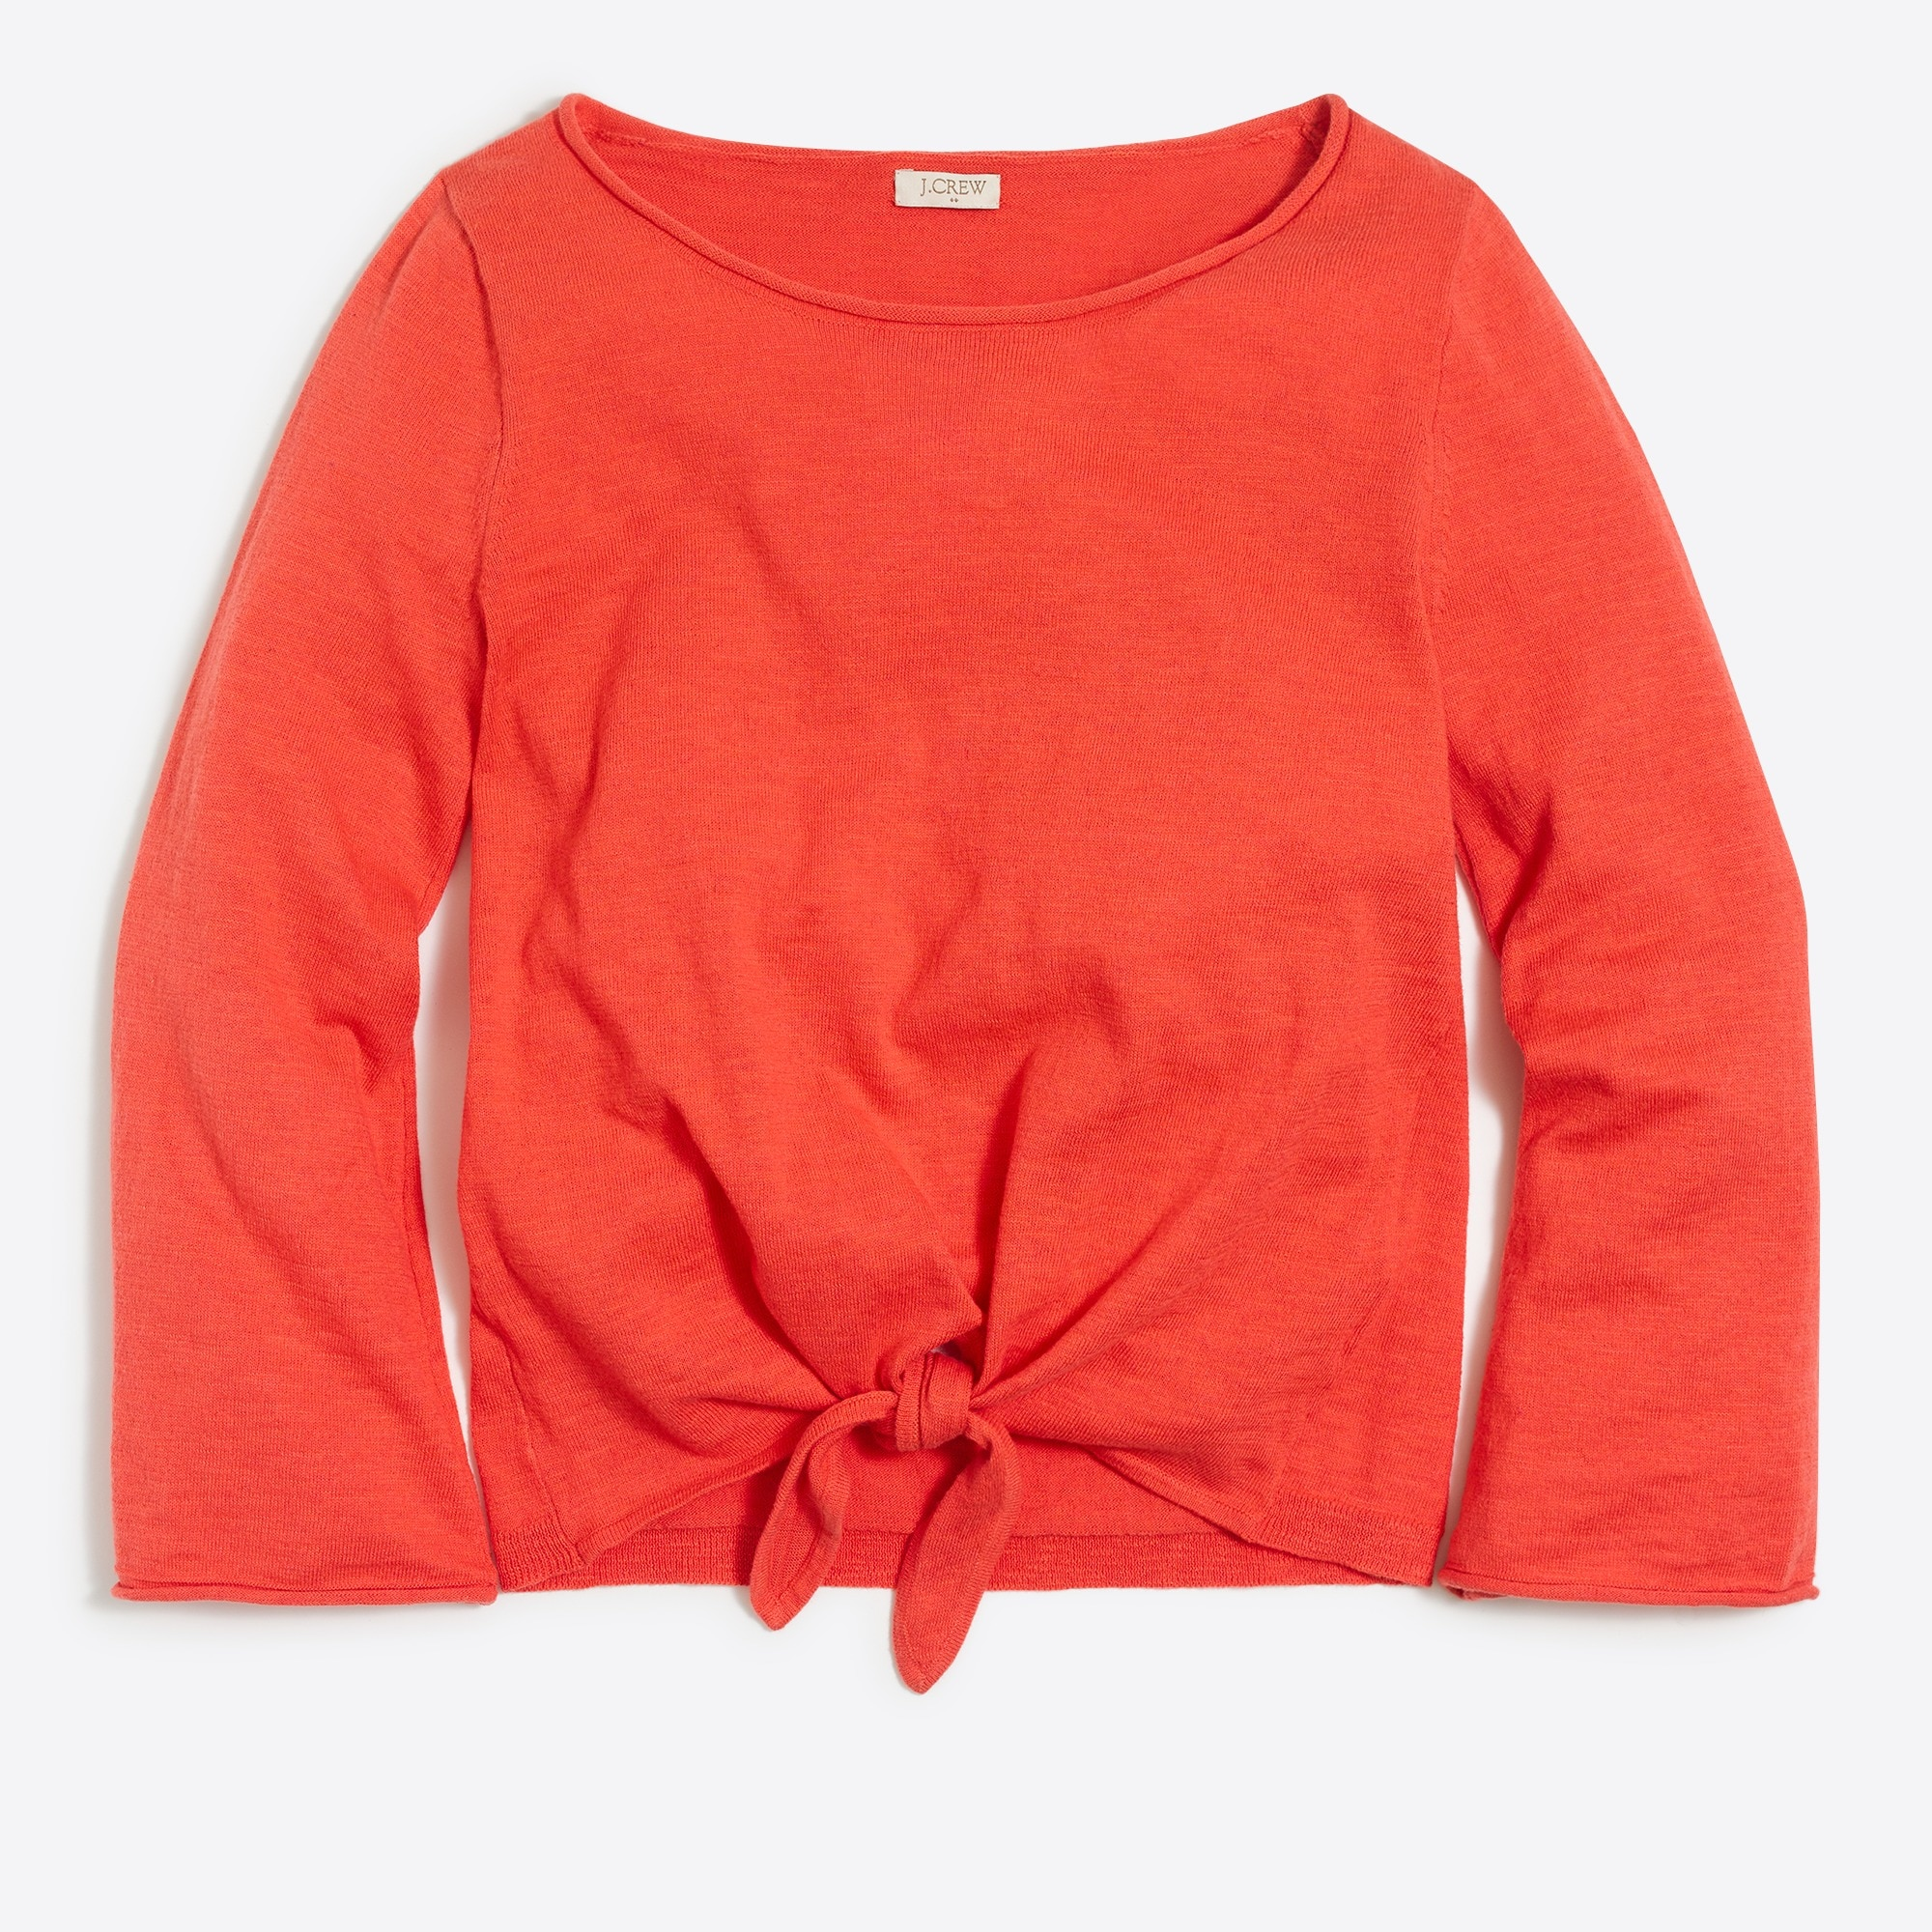 Boatneck tie-front sweater